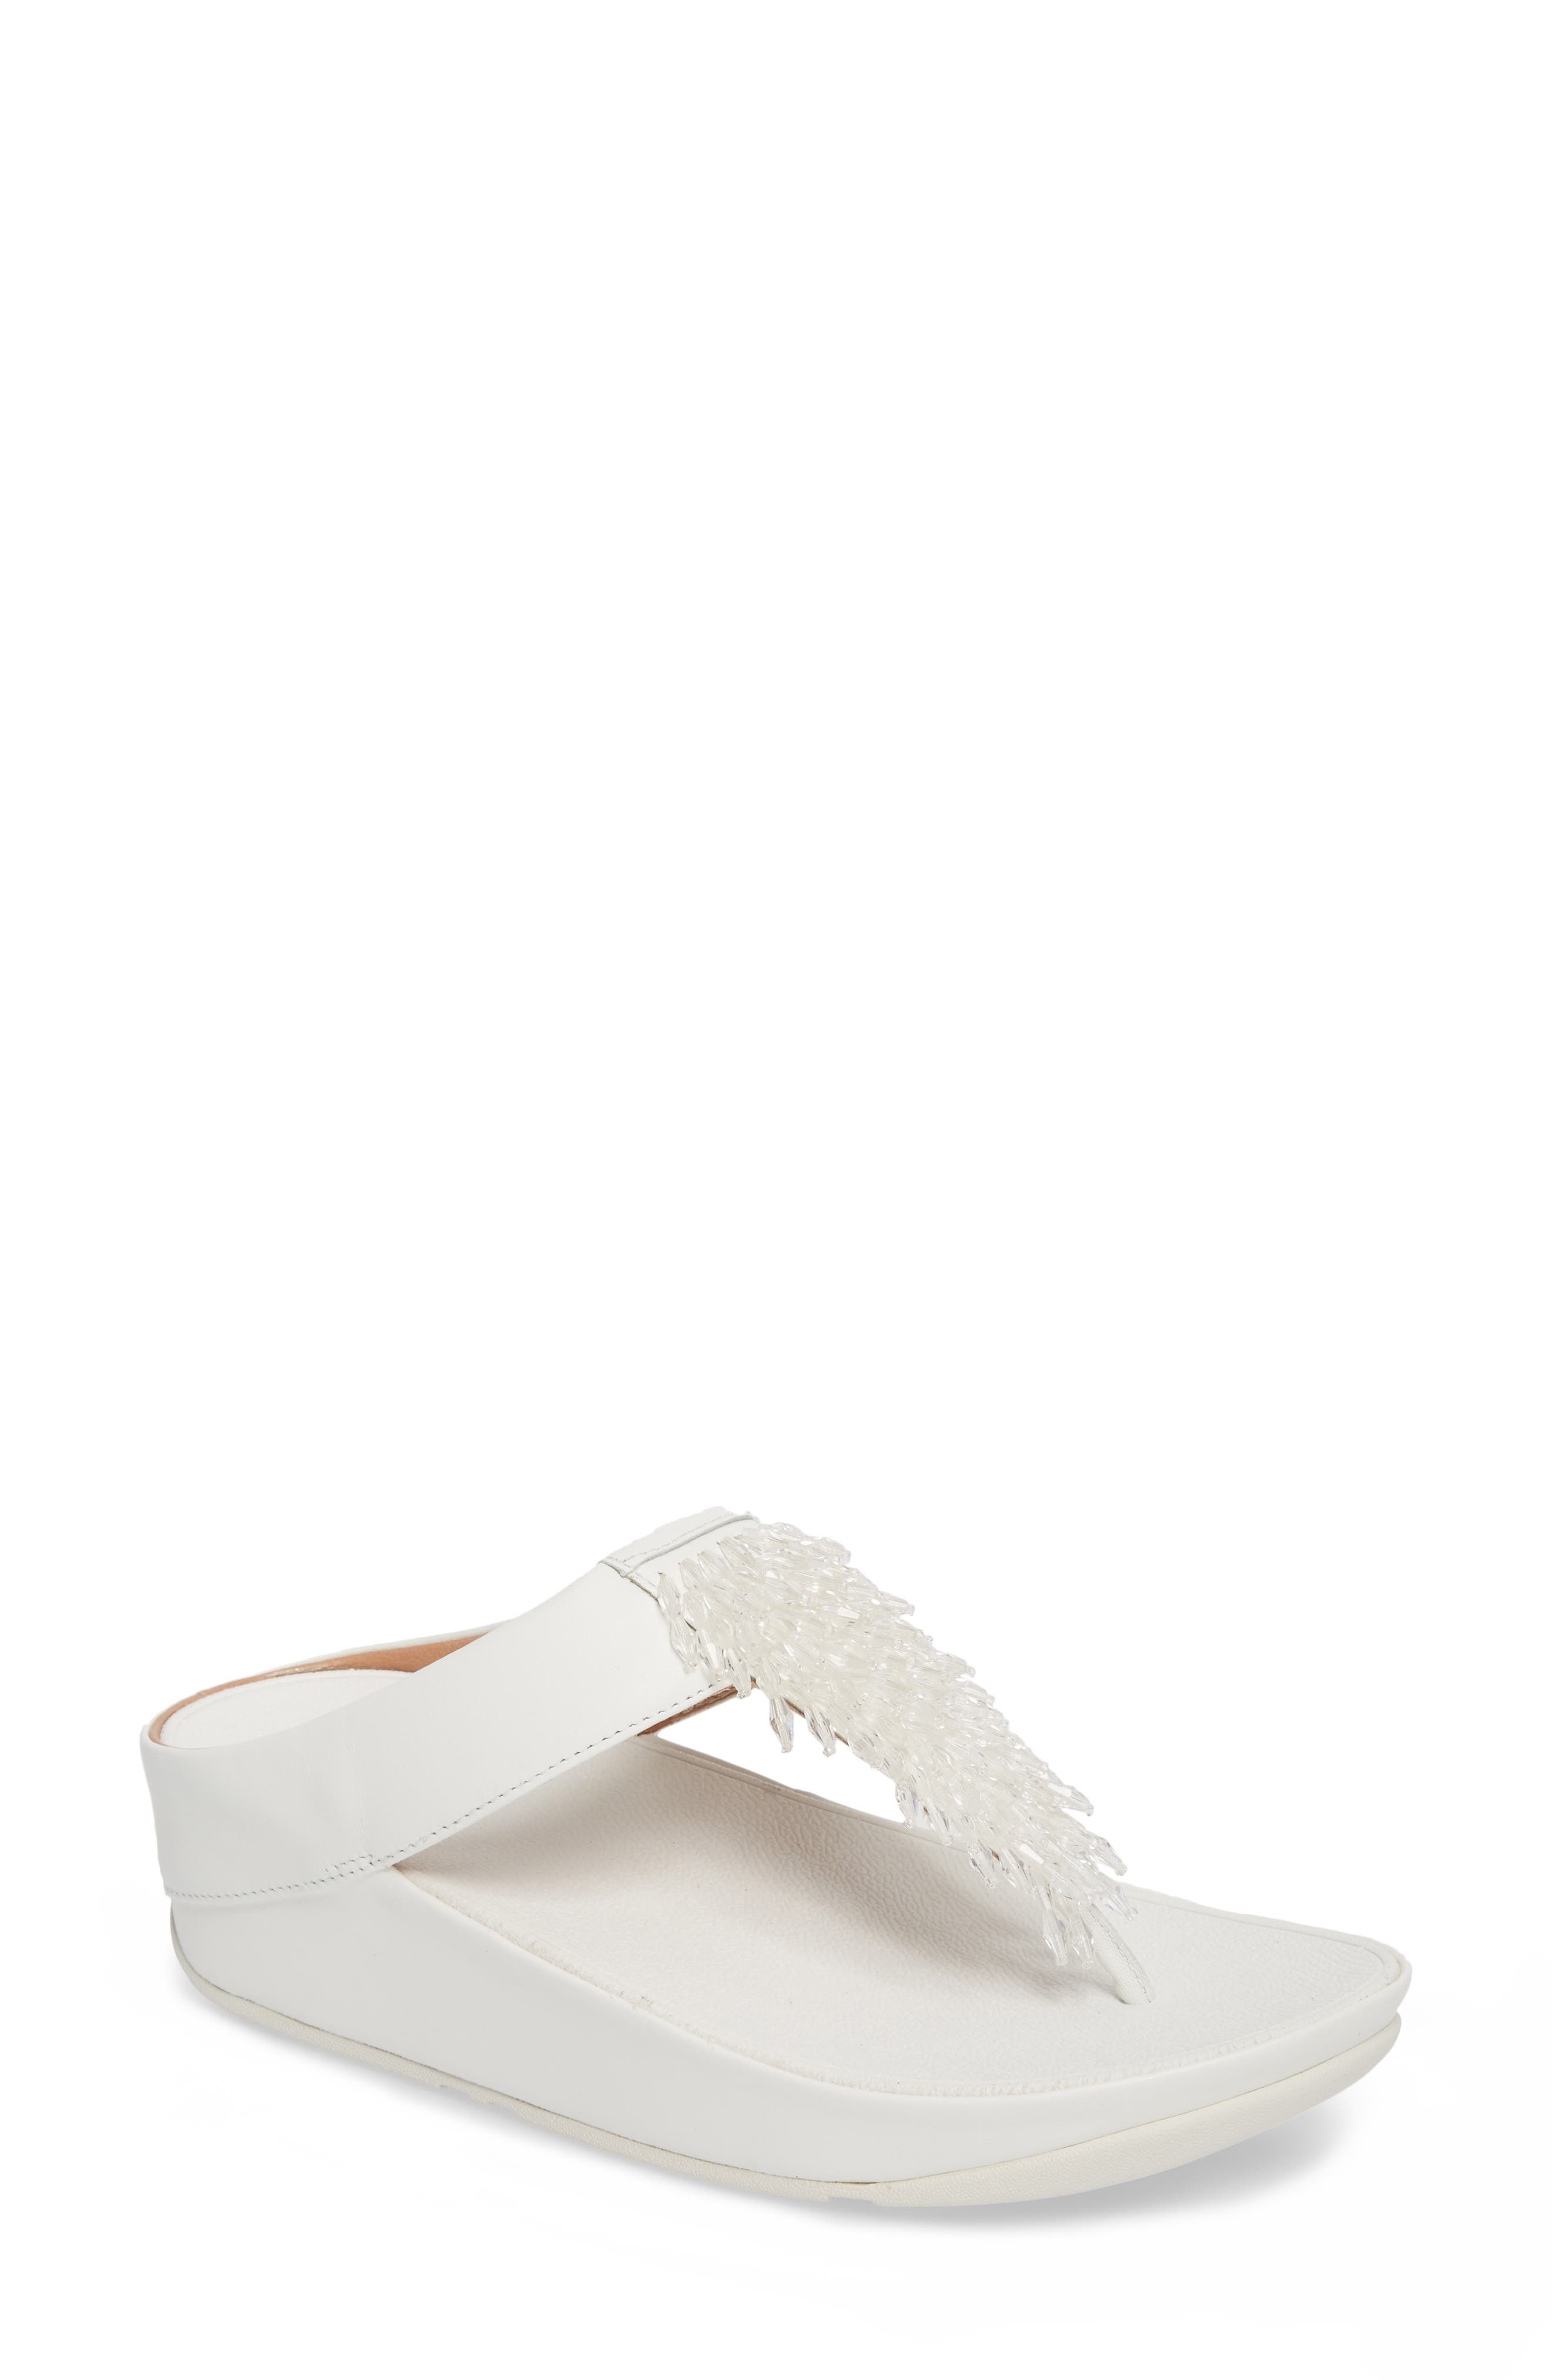 Rumba Sandal,                         Main,                         color, Urban White Leather